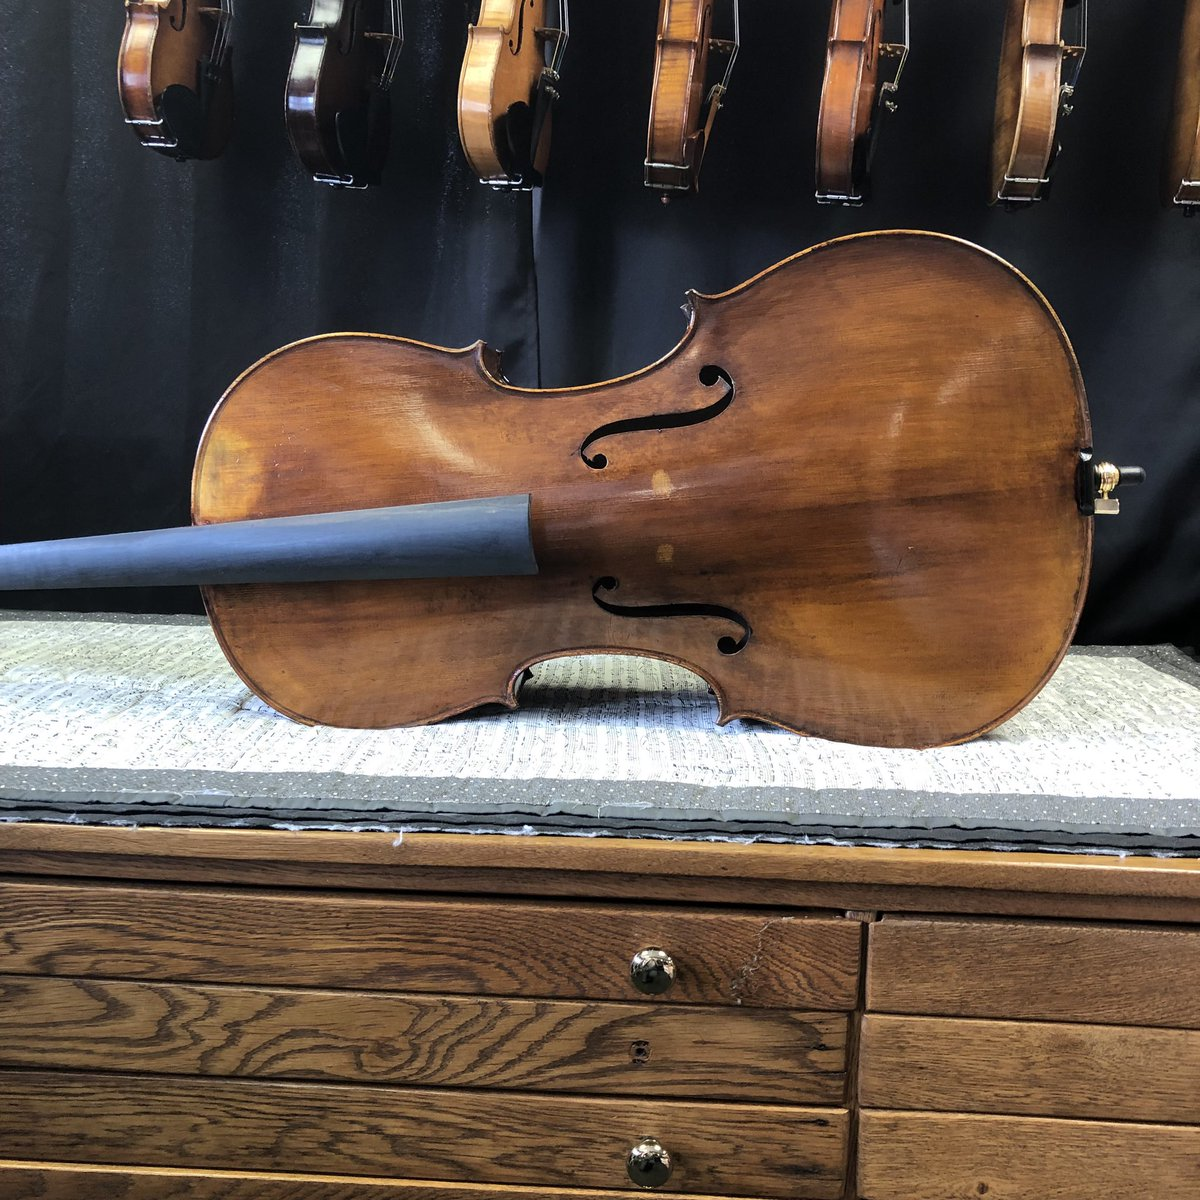 A new cello has arrived! It is a Thomas Ernst cello. We will be setting it up soon so it is ready to play. #cello #musicstore <br>http://pic.twitter.com/v8ATcCWaVH